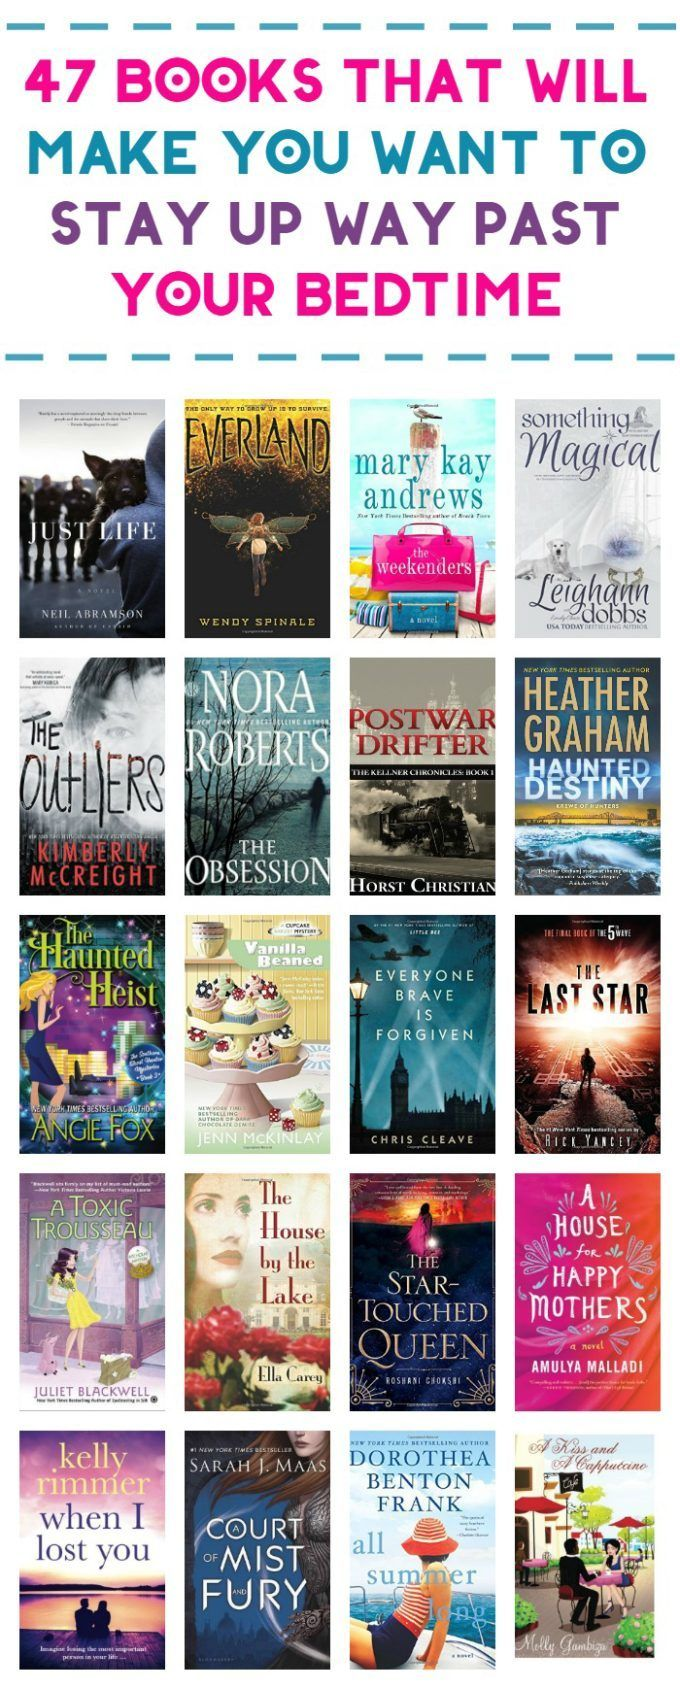 2016 Summer Reading List for Adults